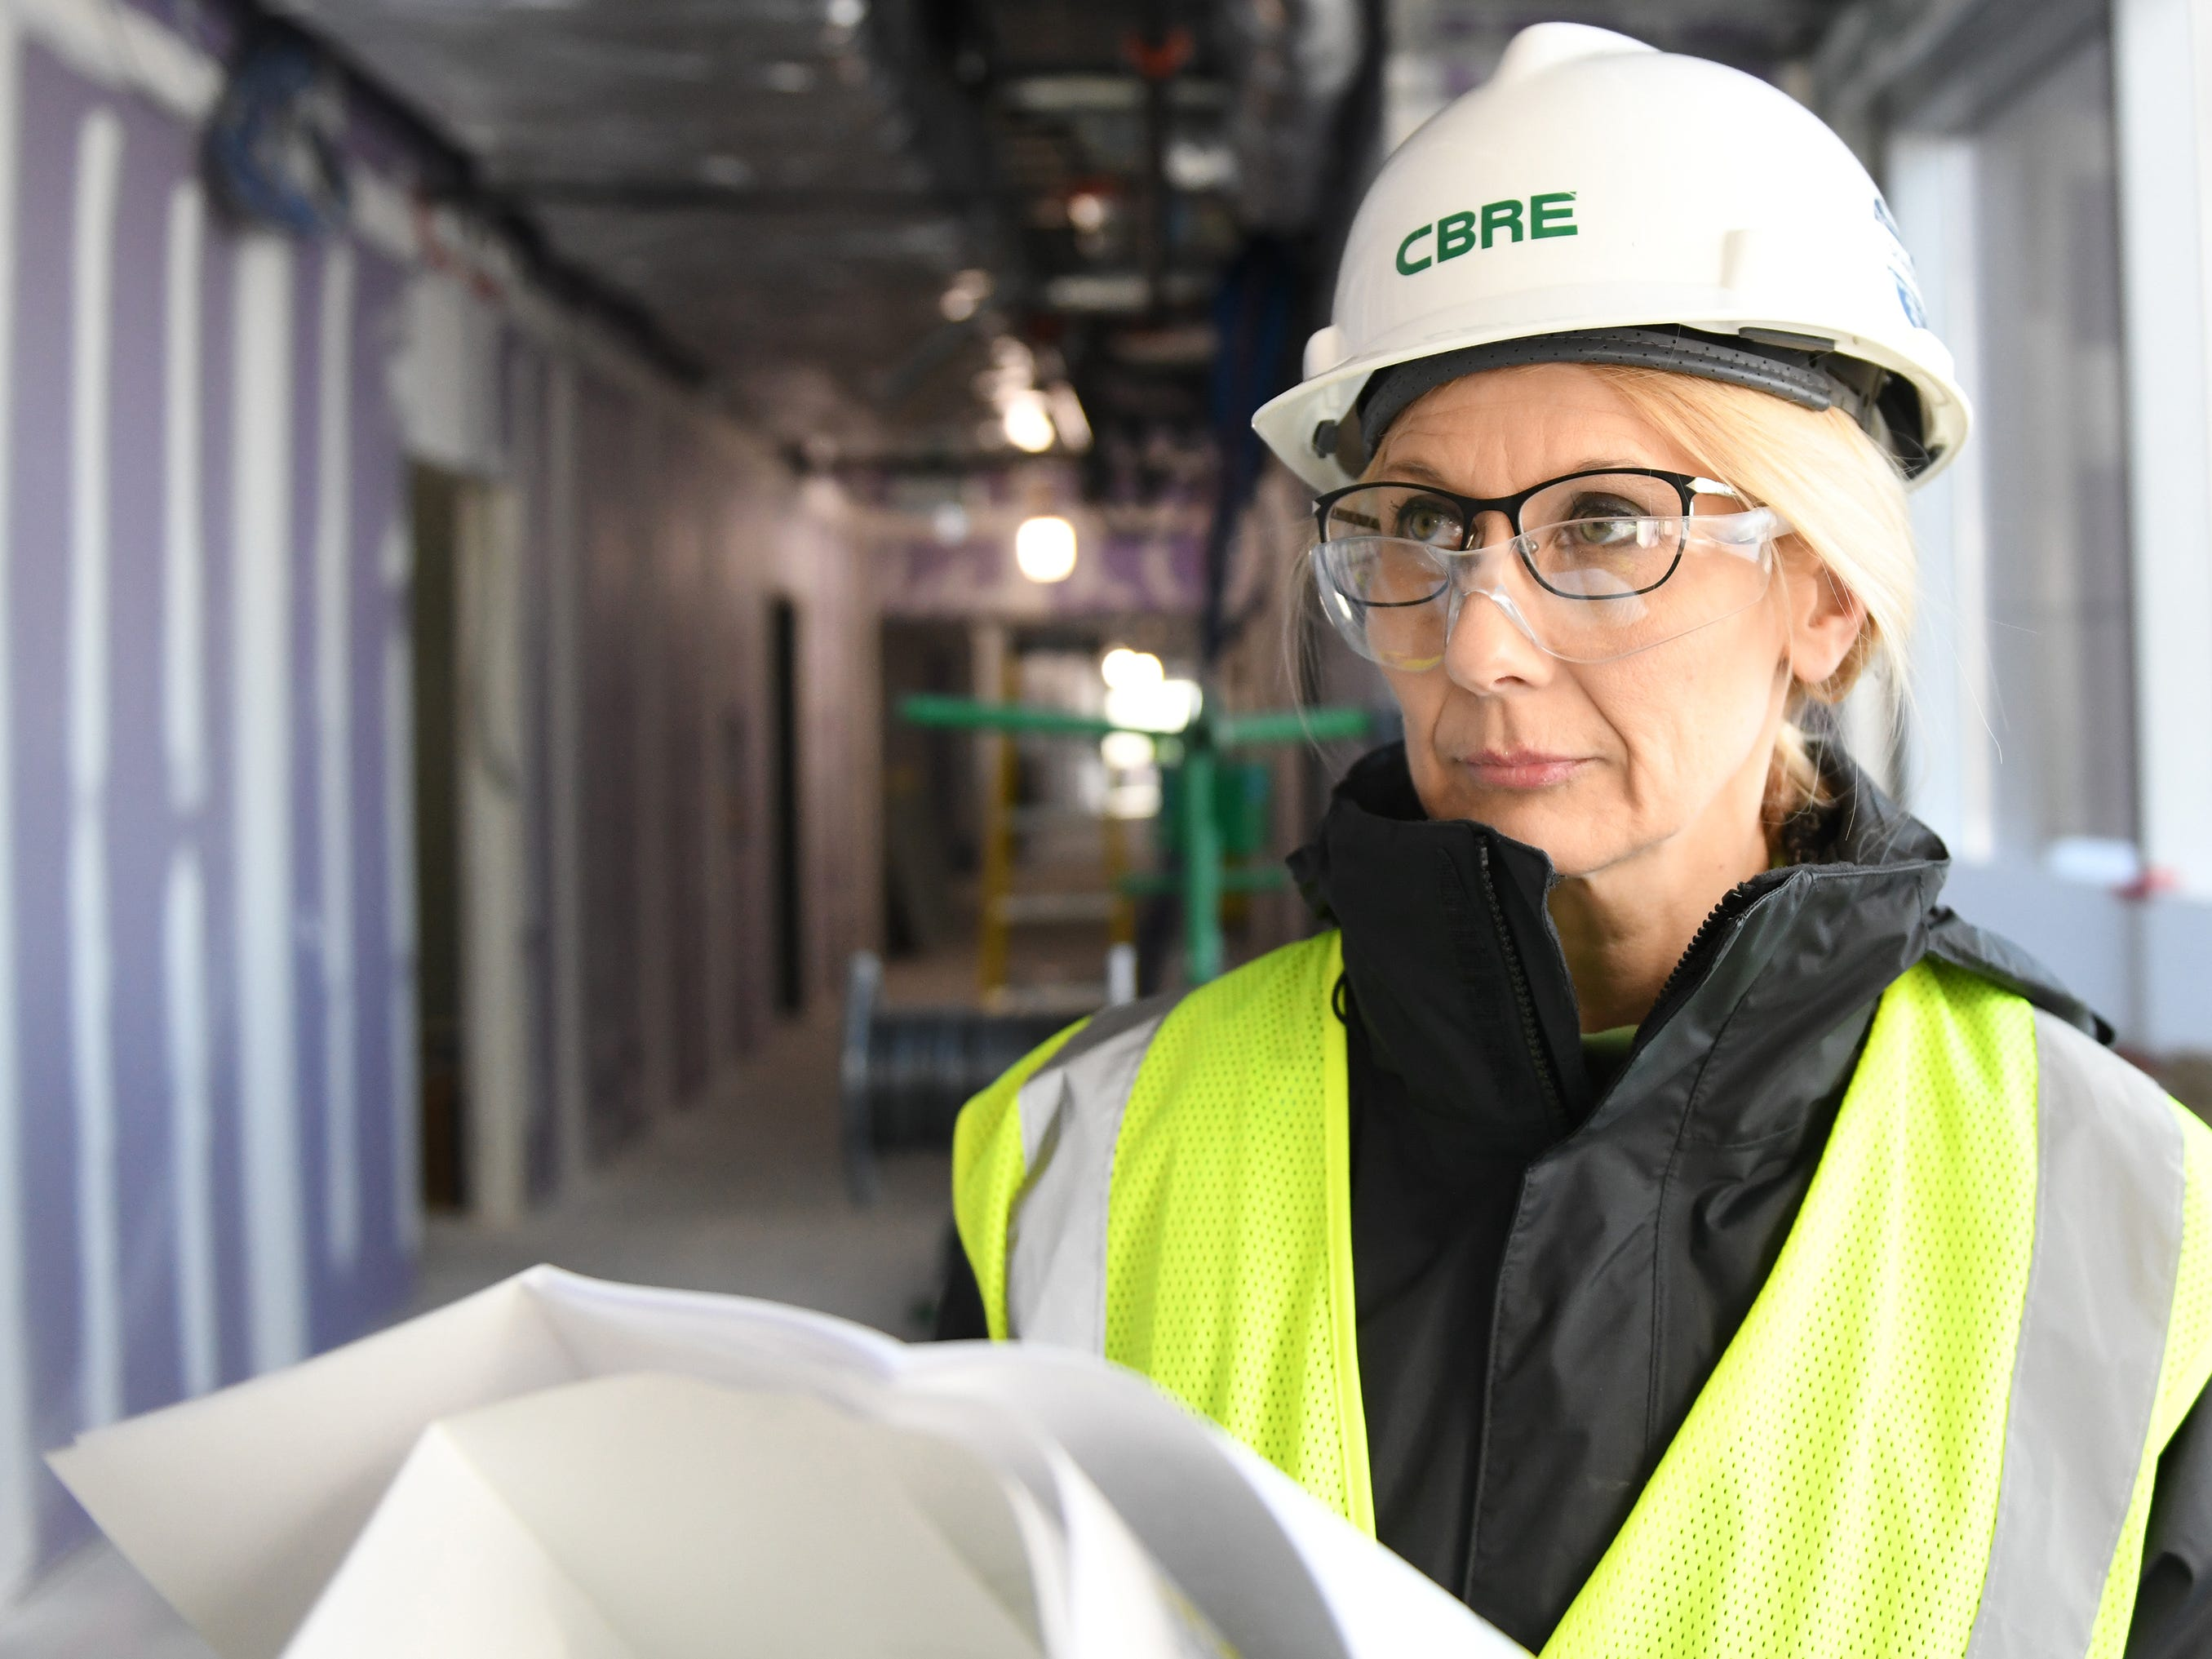 Tammy Hardin, one of the senior project managers at the Inspira Medical Center Mullica Hill construction site, watches as work continues on the facility.